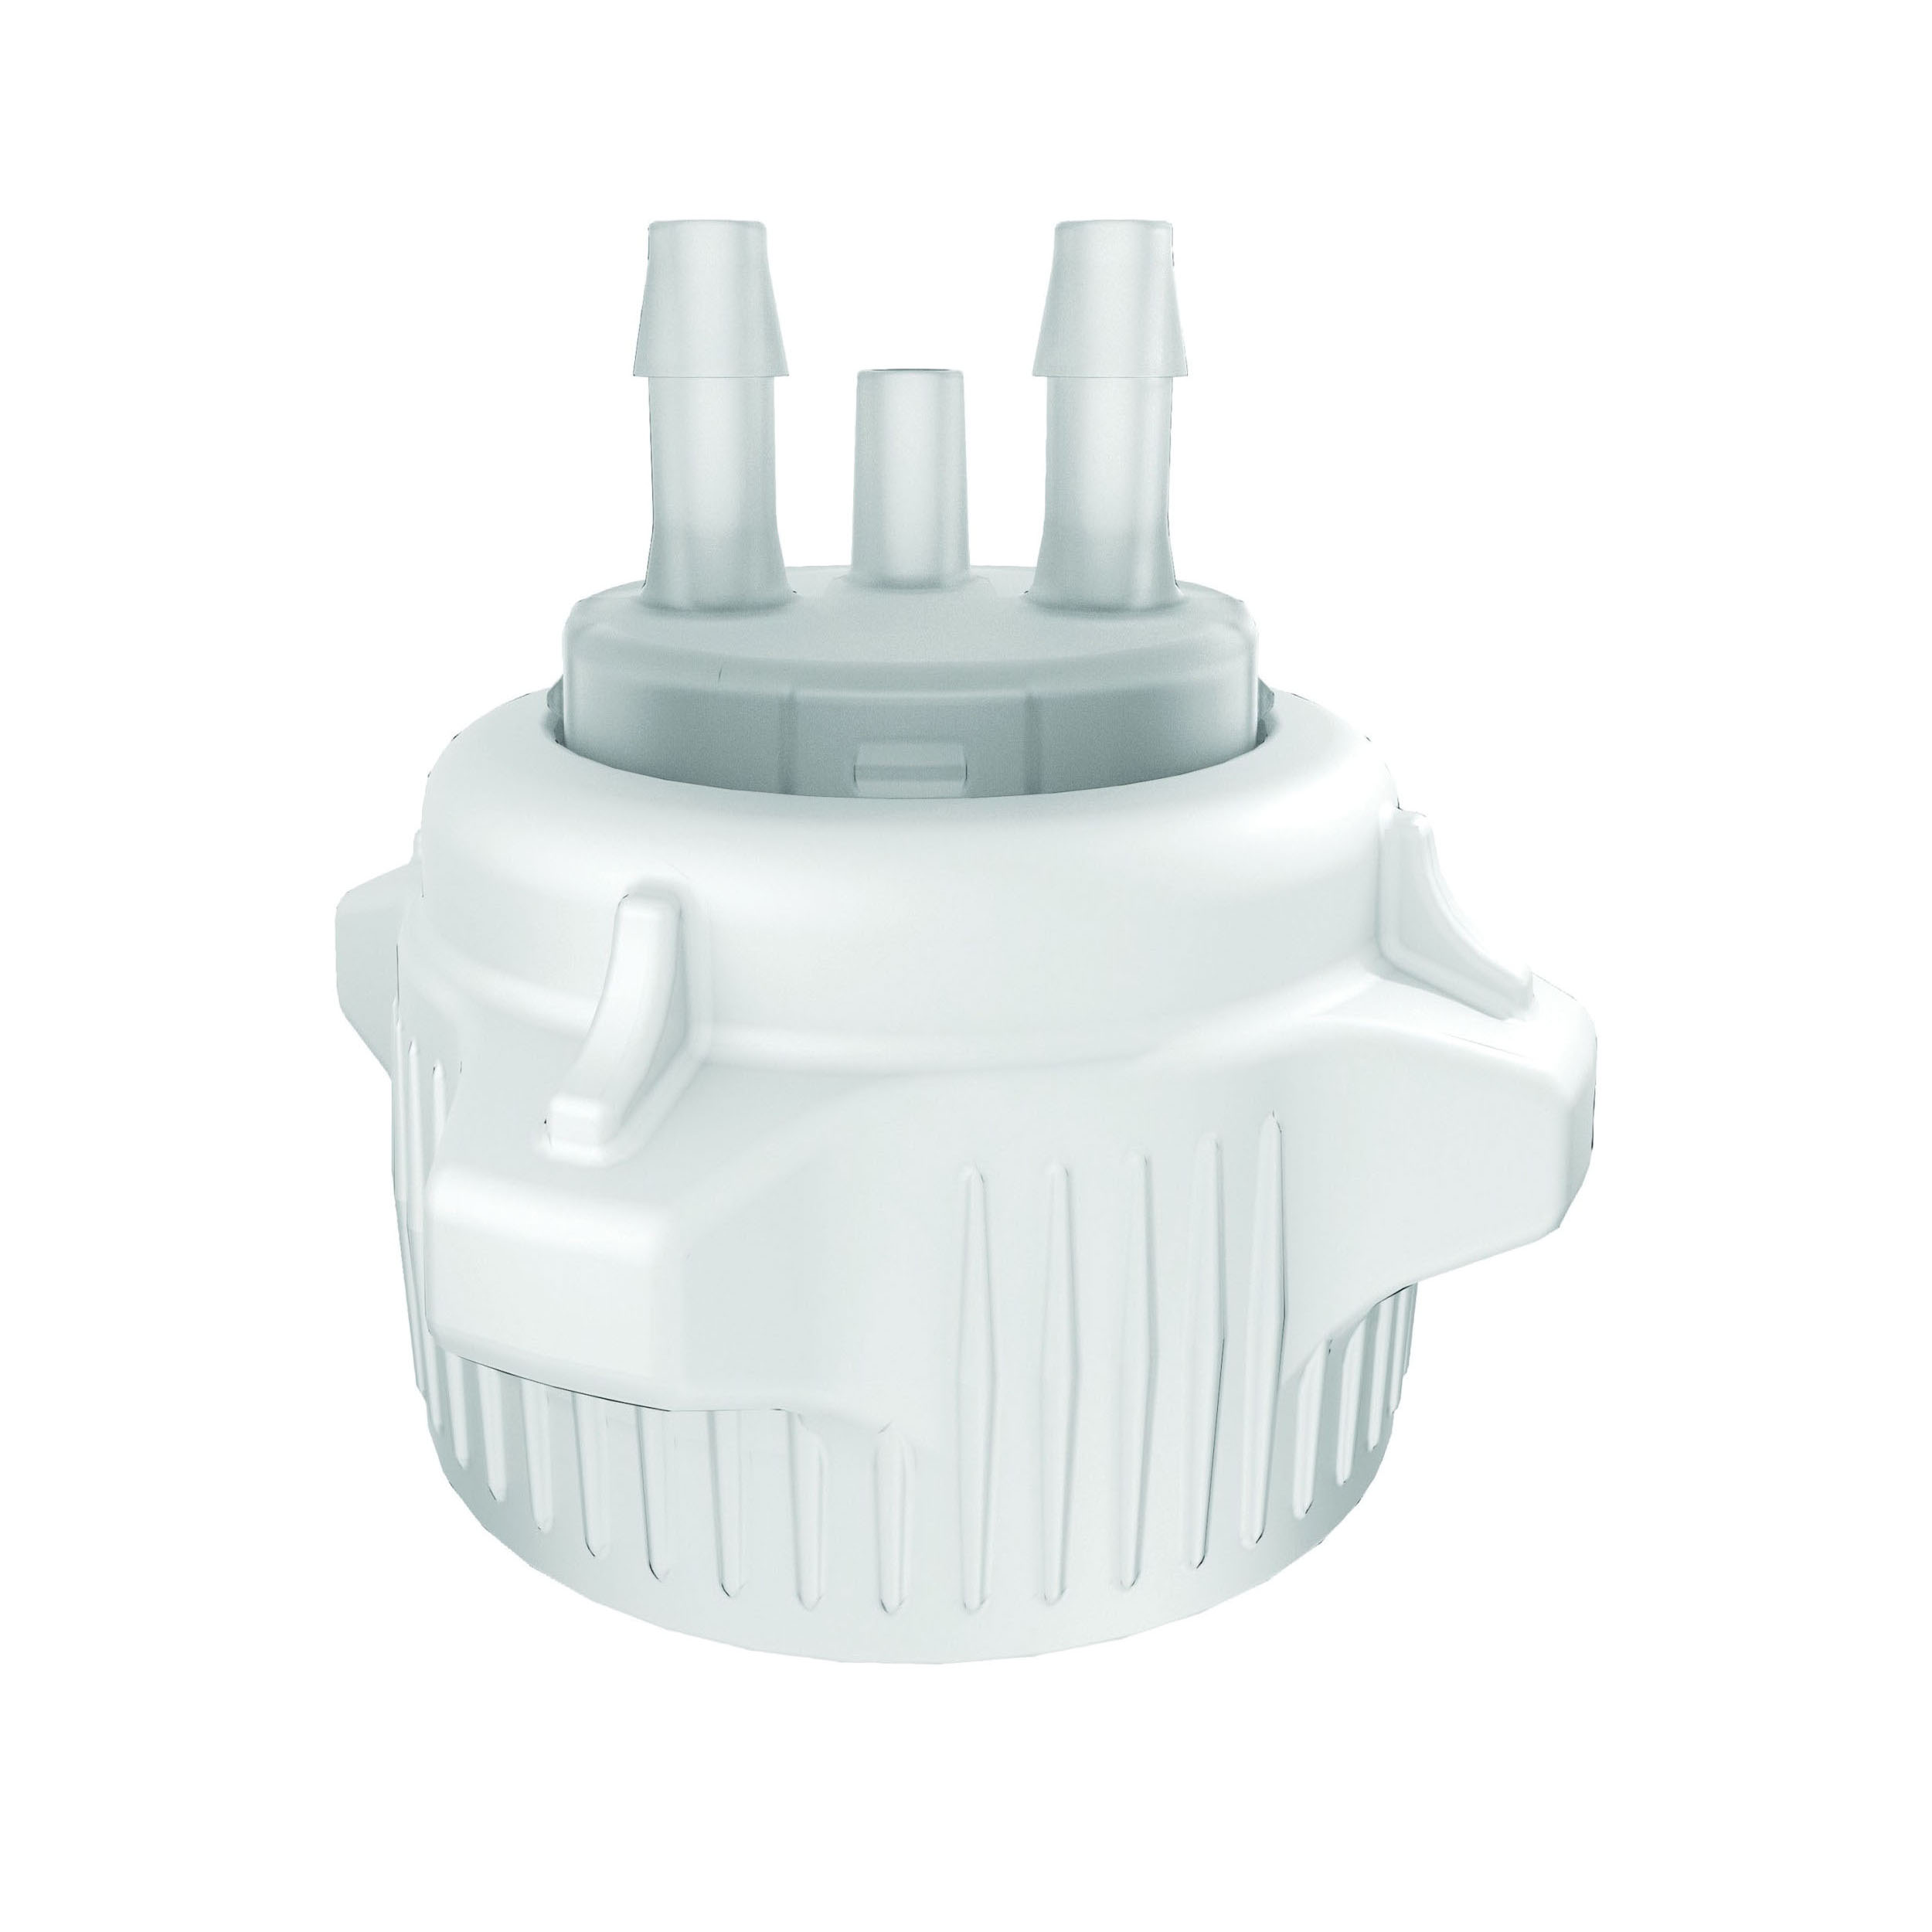 Justrite® 12855 Open Top Carboy Cap With Adapter, (2) 1/4 in Molded-In Hose Barbs and Vent, 3 in Dia x 53 mm Mouth, Polypropylene, White